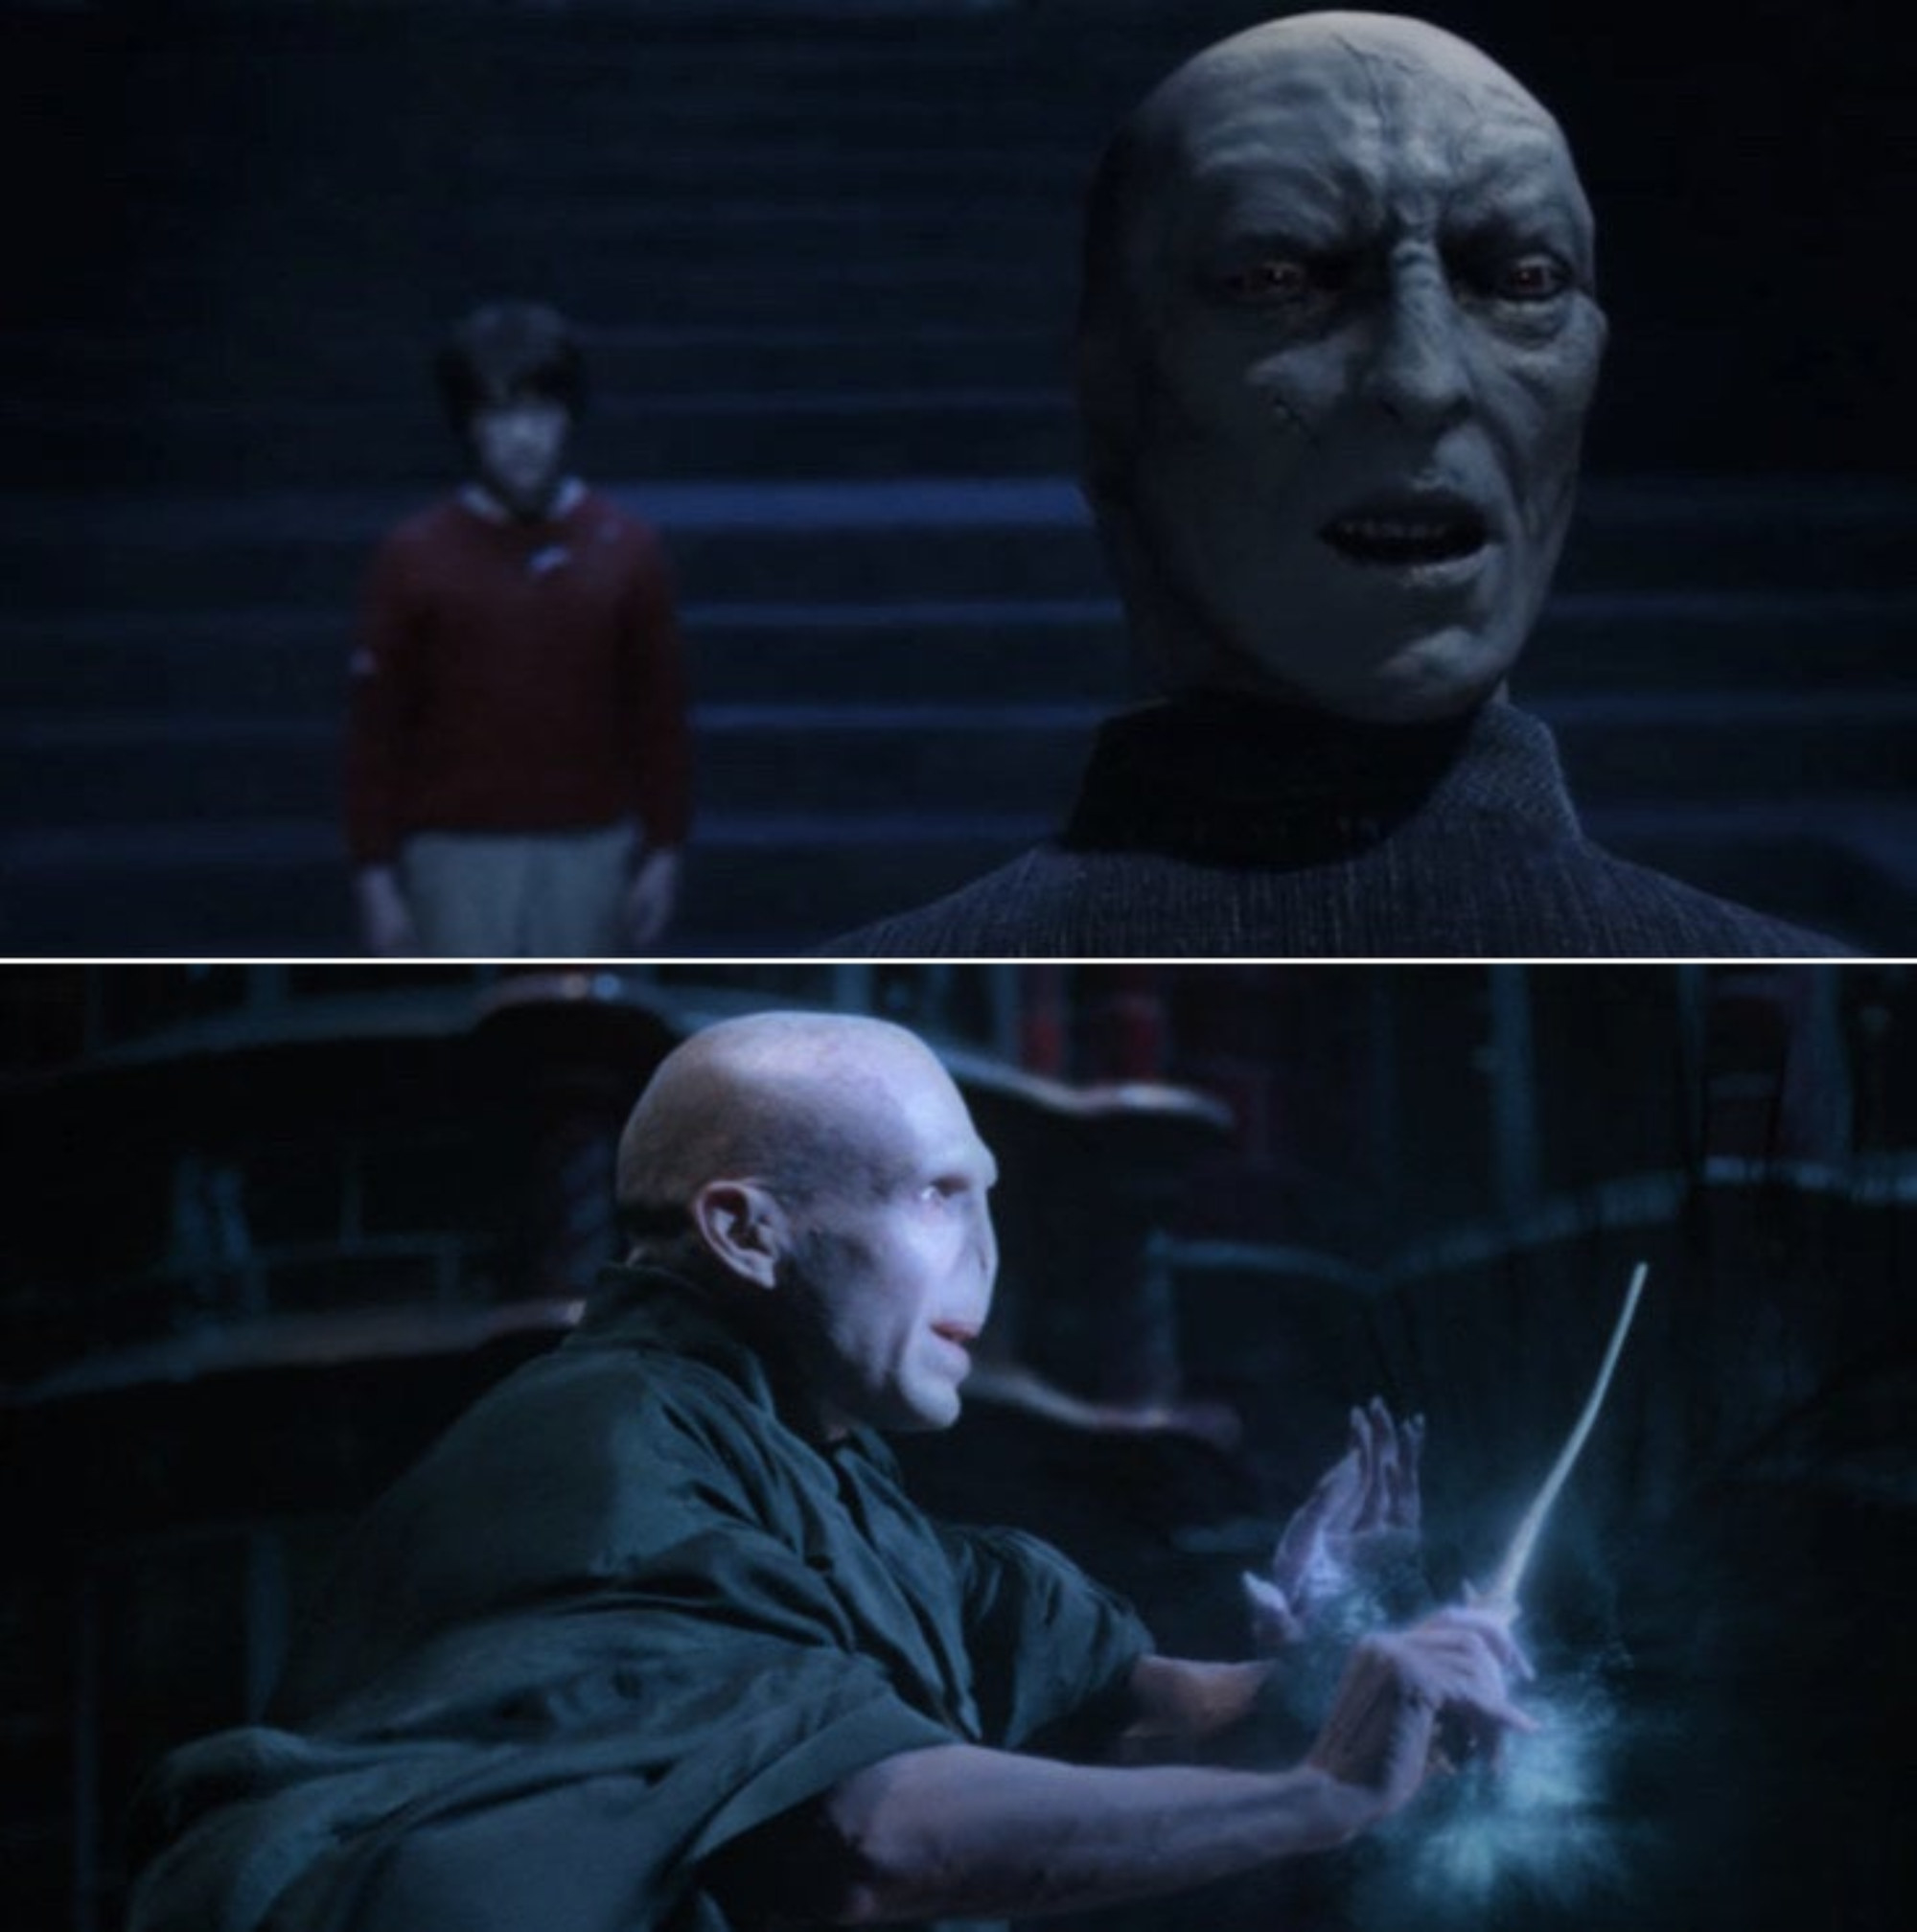 Voldemort talking to Harry while being stuck in Professor Quirrell with an evil expression on his face; Voldemort battling Dumbledore at the Ministry of Magic with determination